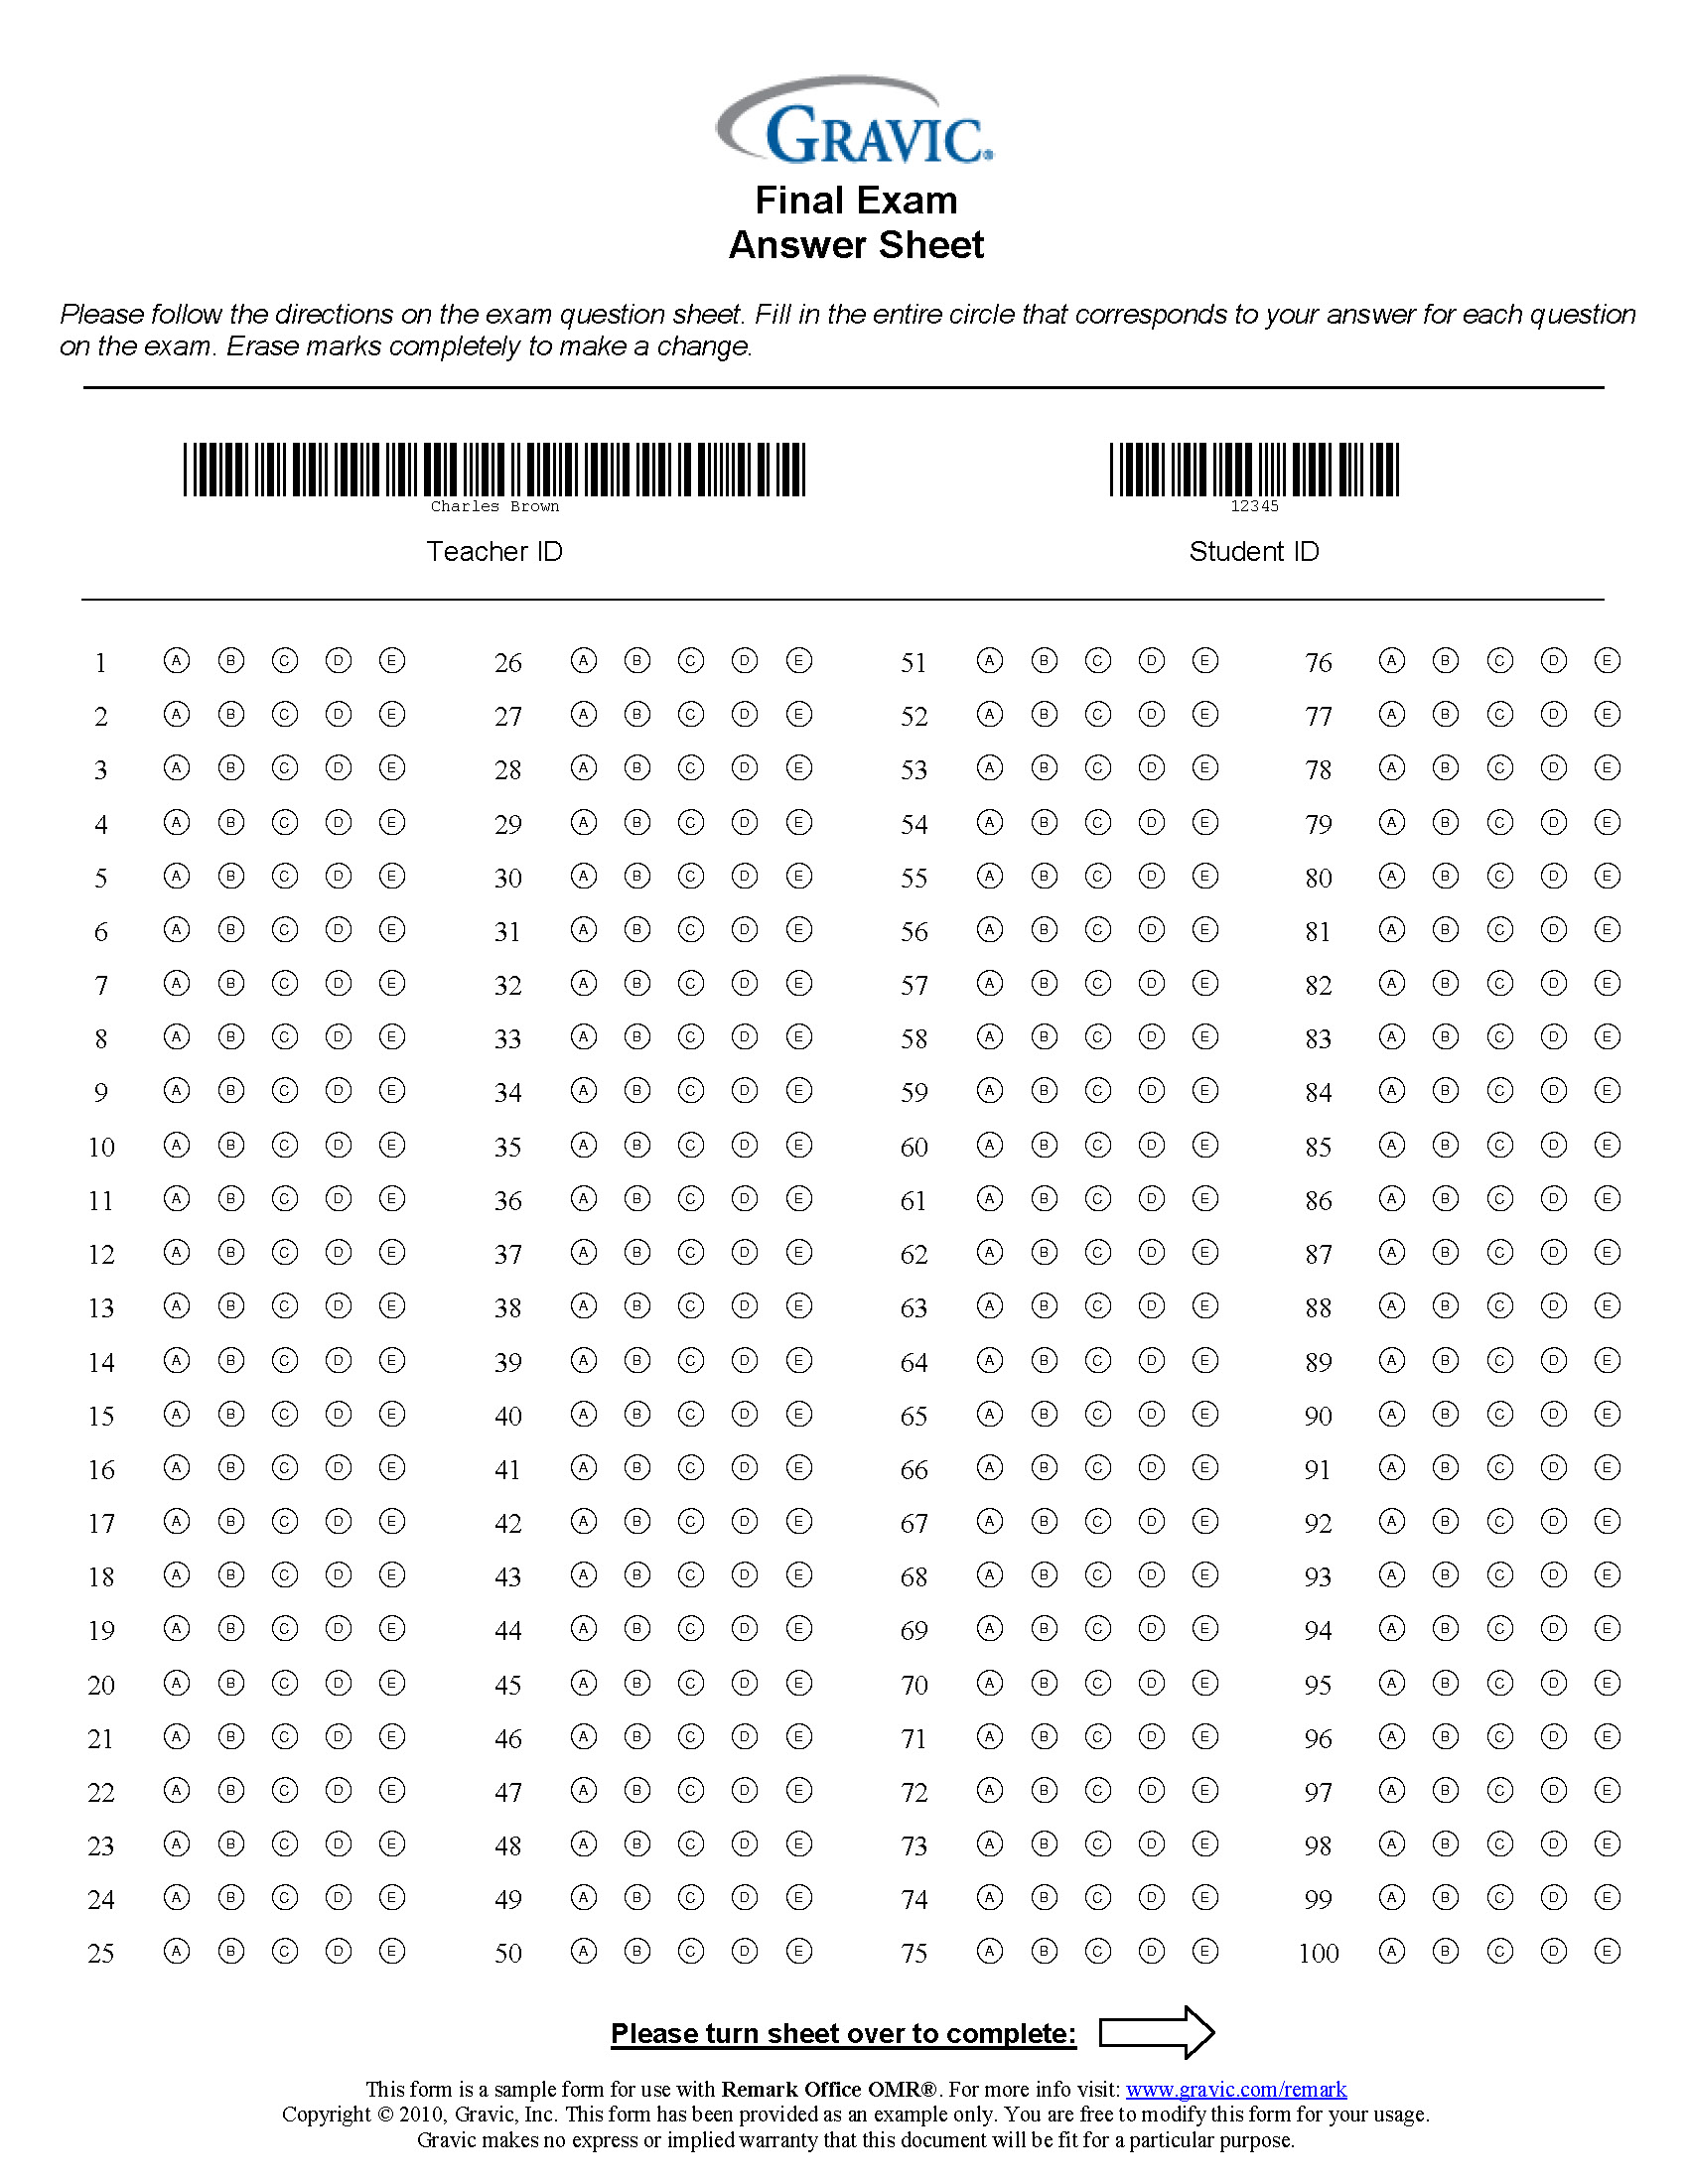 200 Question Answer Sheet with Extra Credit and Barcode · Remark ...